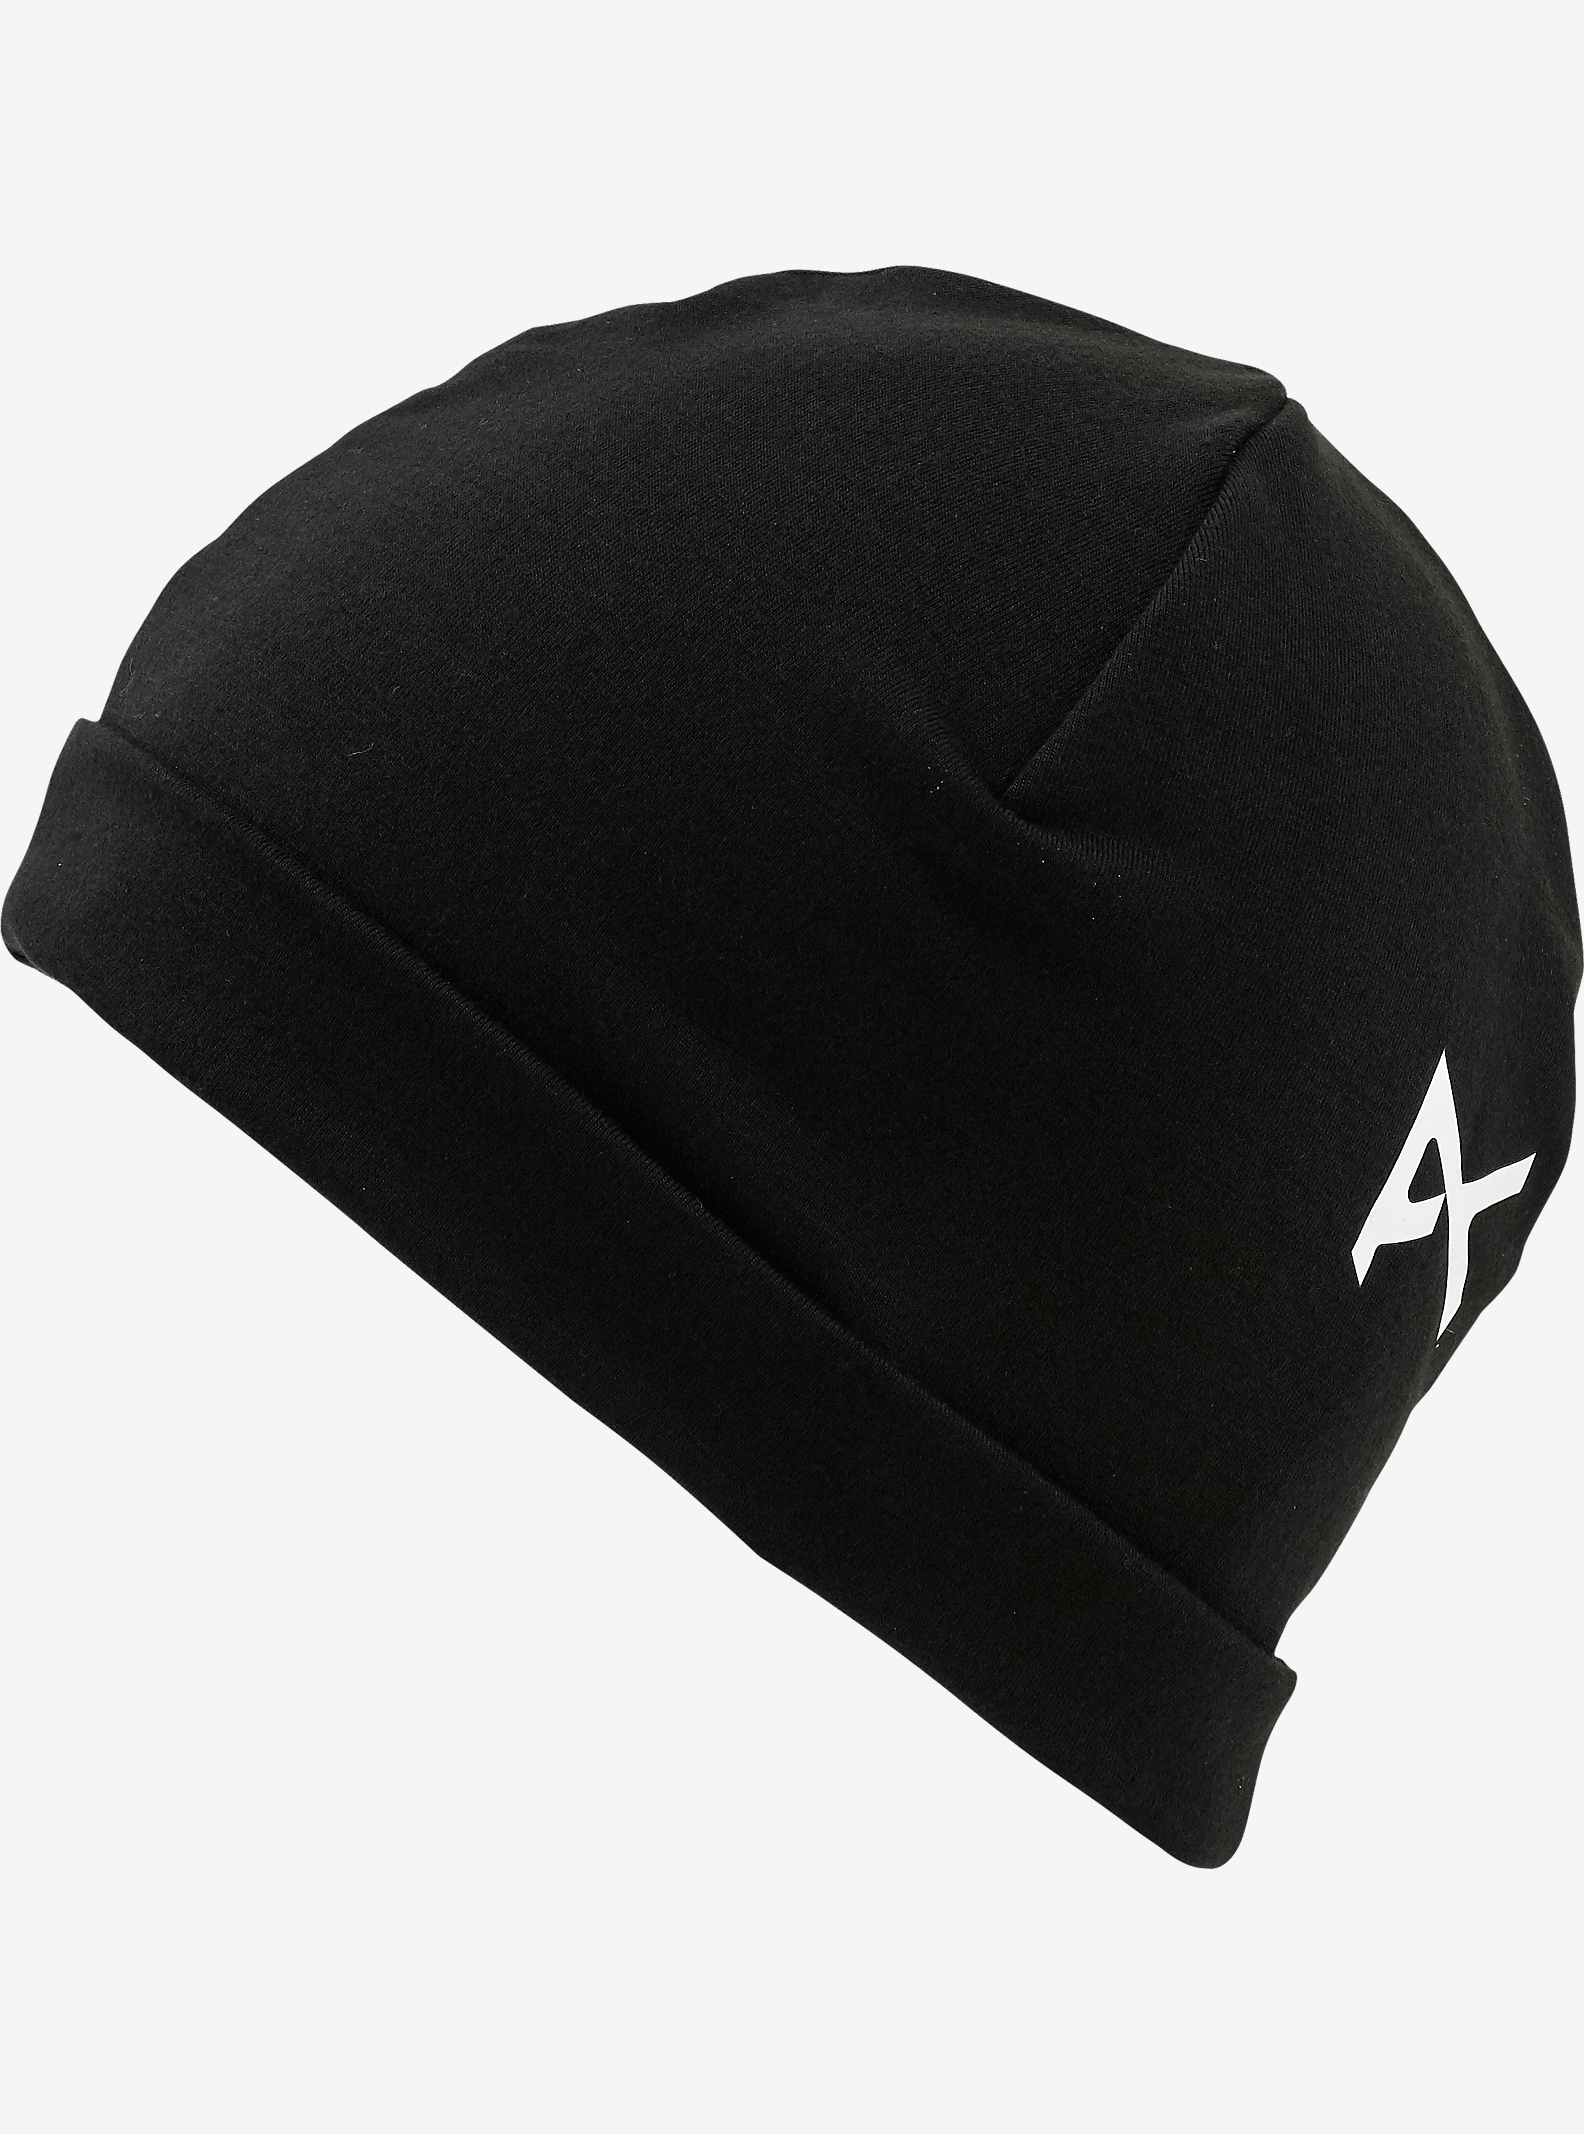 anon. Hellbrook Beanie shown in Black